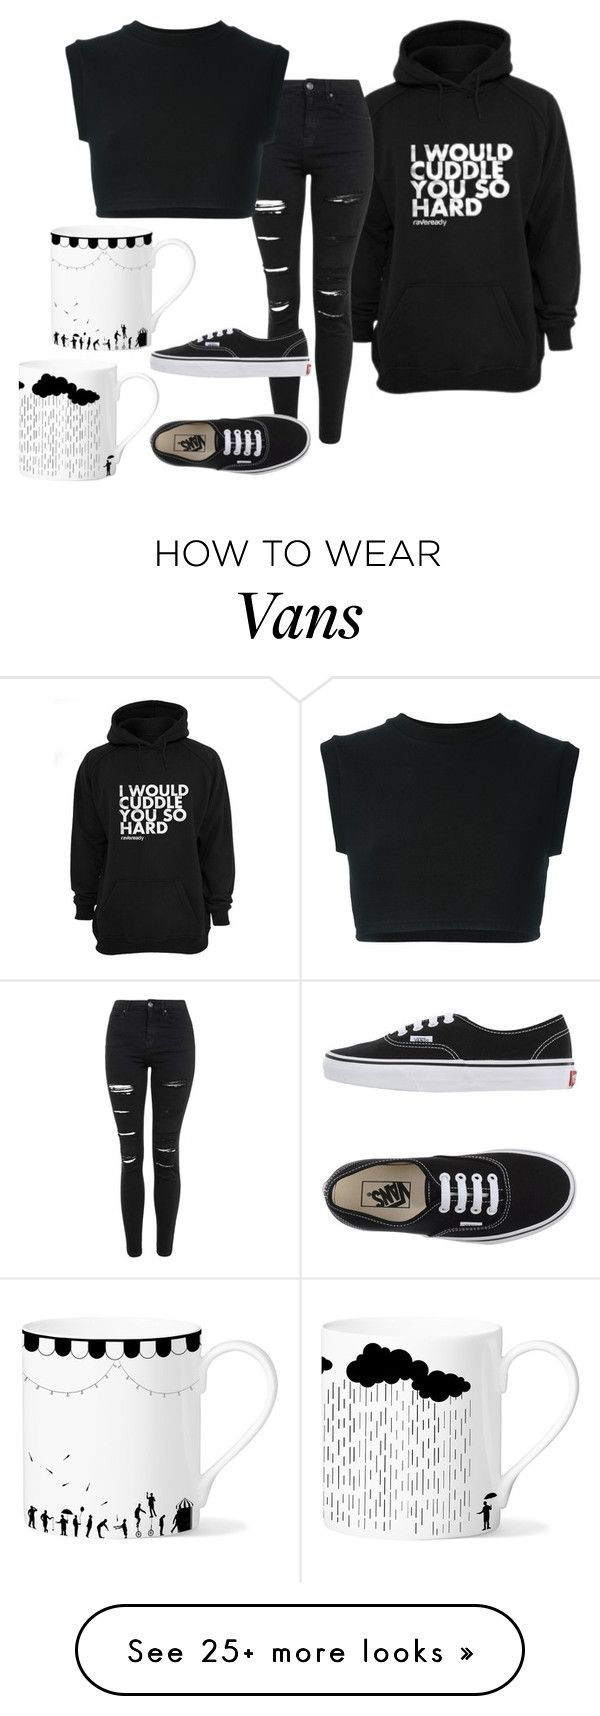 """""""Is it just me or does anyone else really like mugs?"""" by valmay on Polyvore featuring Topshop, adidas Originals, Vans, Eleanor Stuart, women's clothing, women's fashion, women, female, woman and misses"""